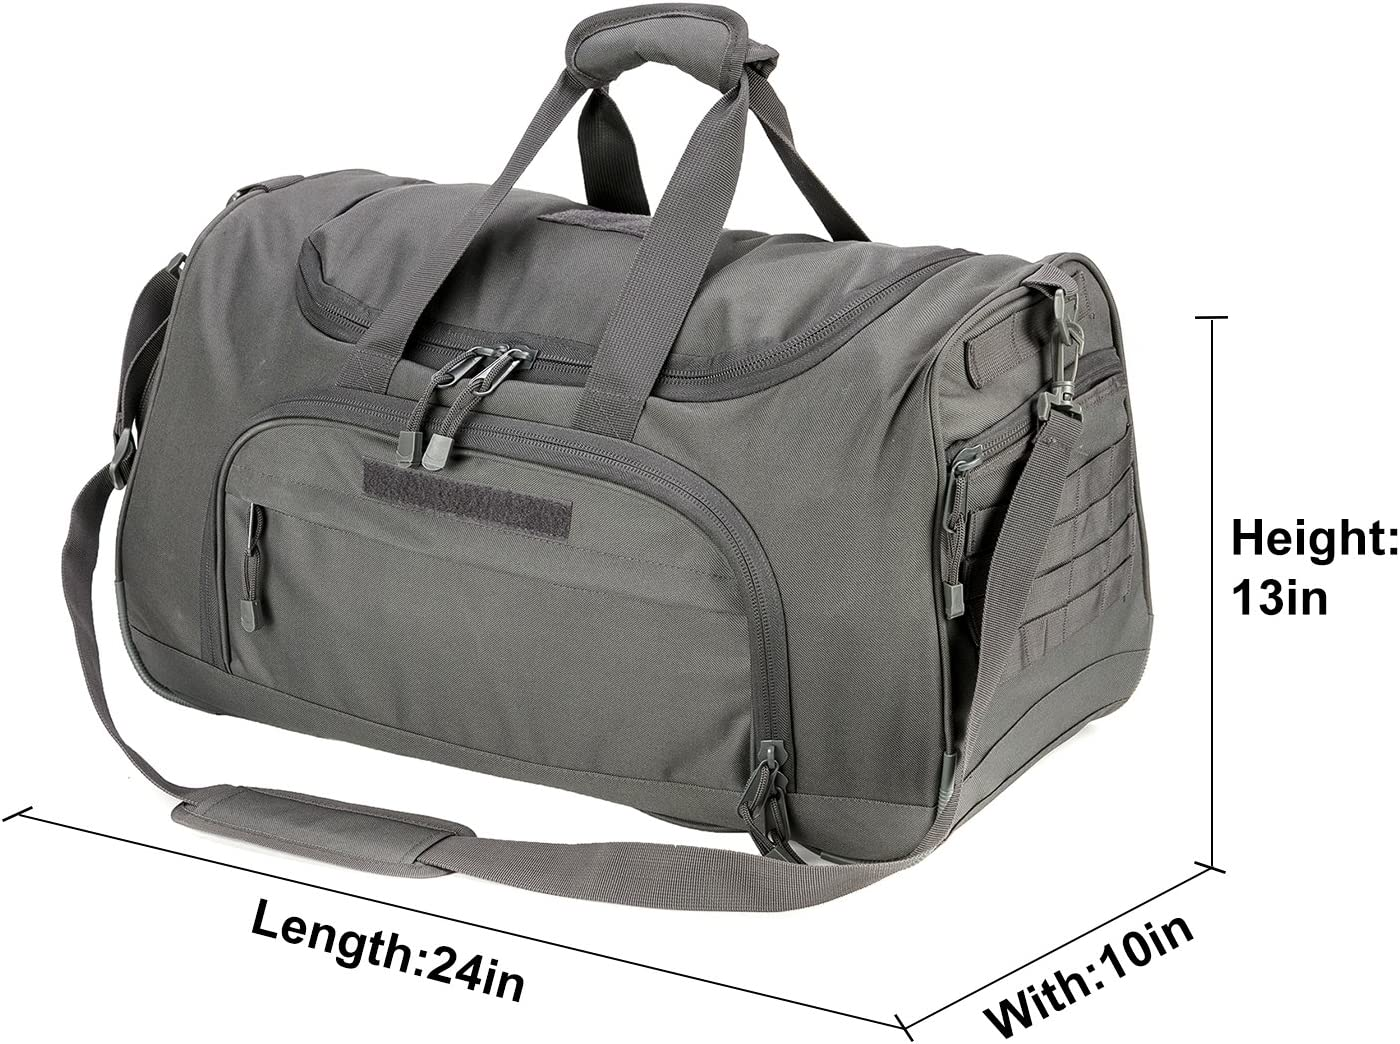 WolfWarriorX Gym Bag for Men Tactical Duffle Bag Military Travel Work Out Bags